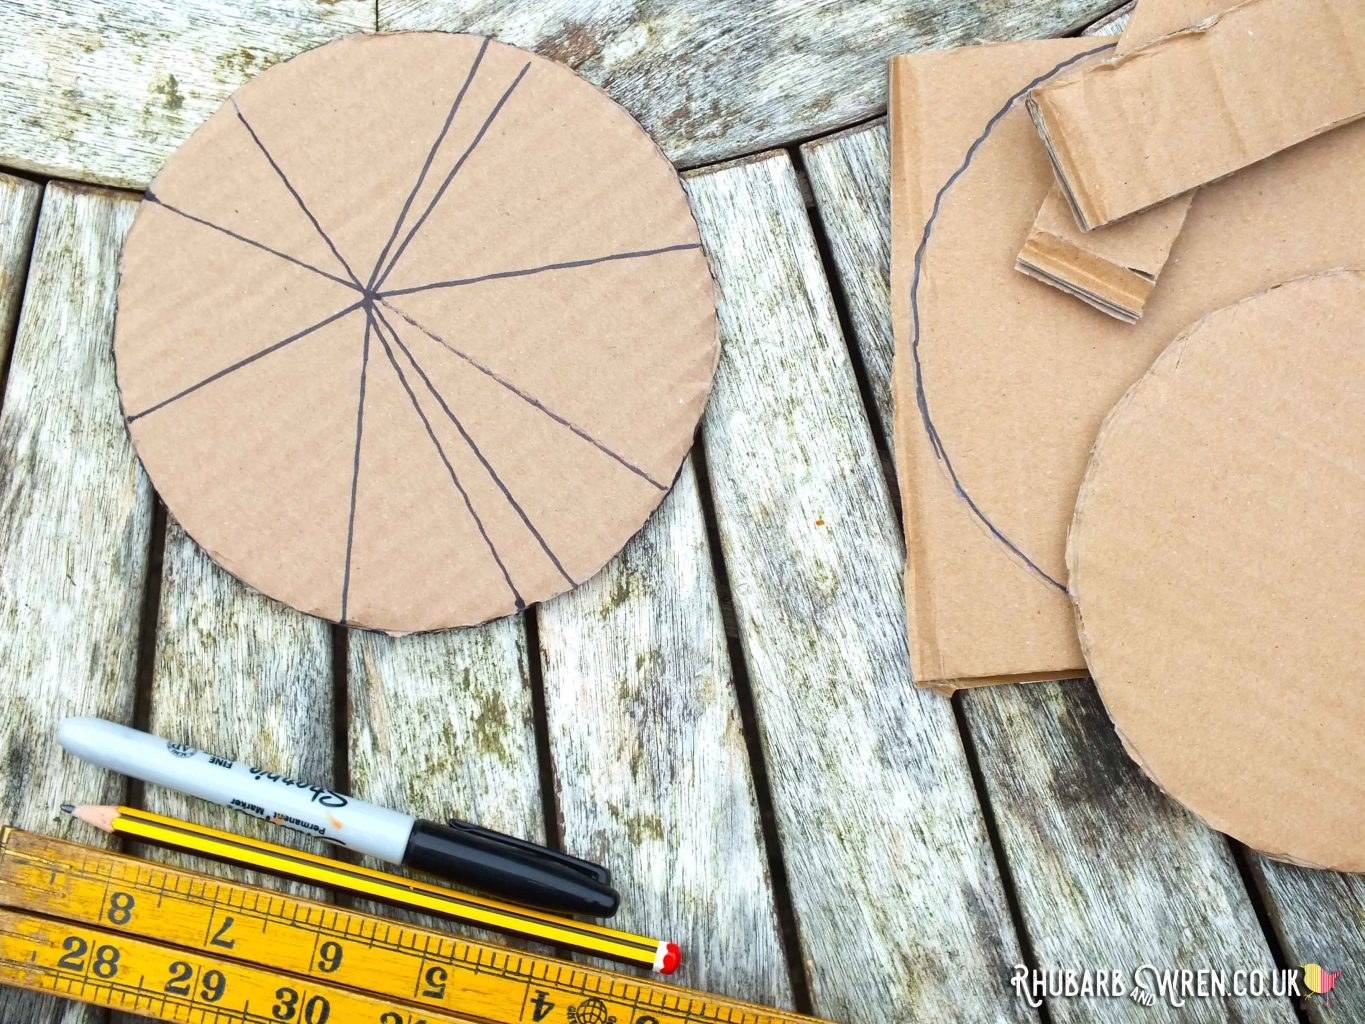 Drawing a spiderweb on a circle of corrugated cardboard